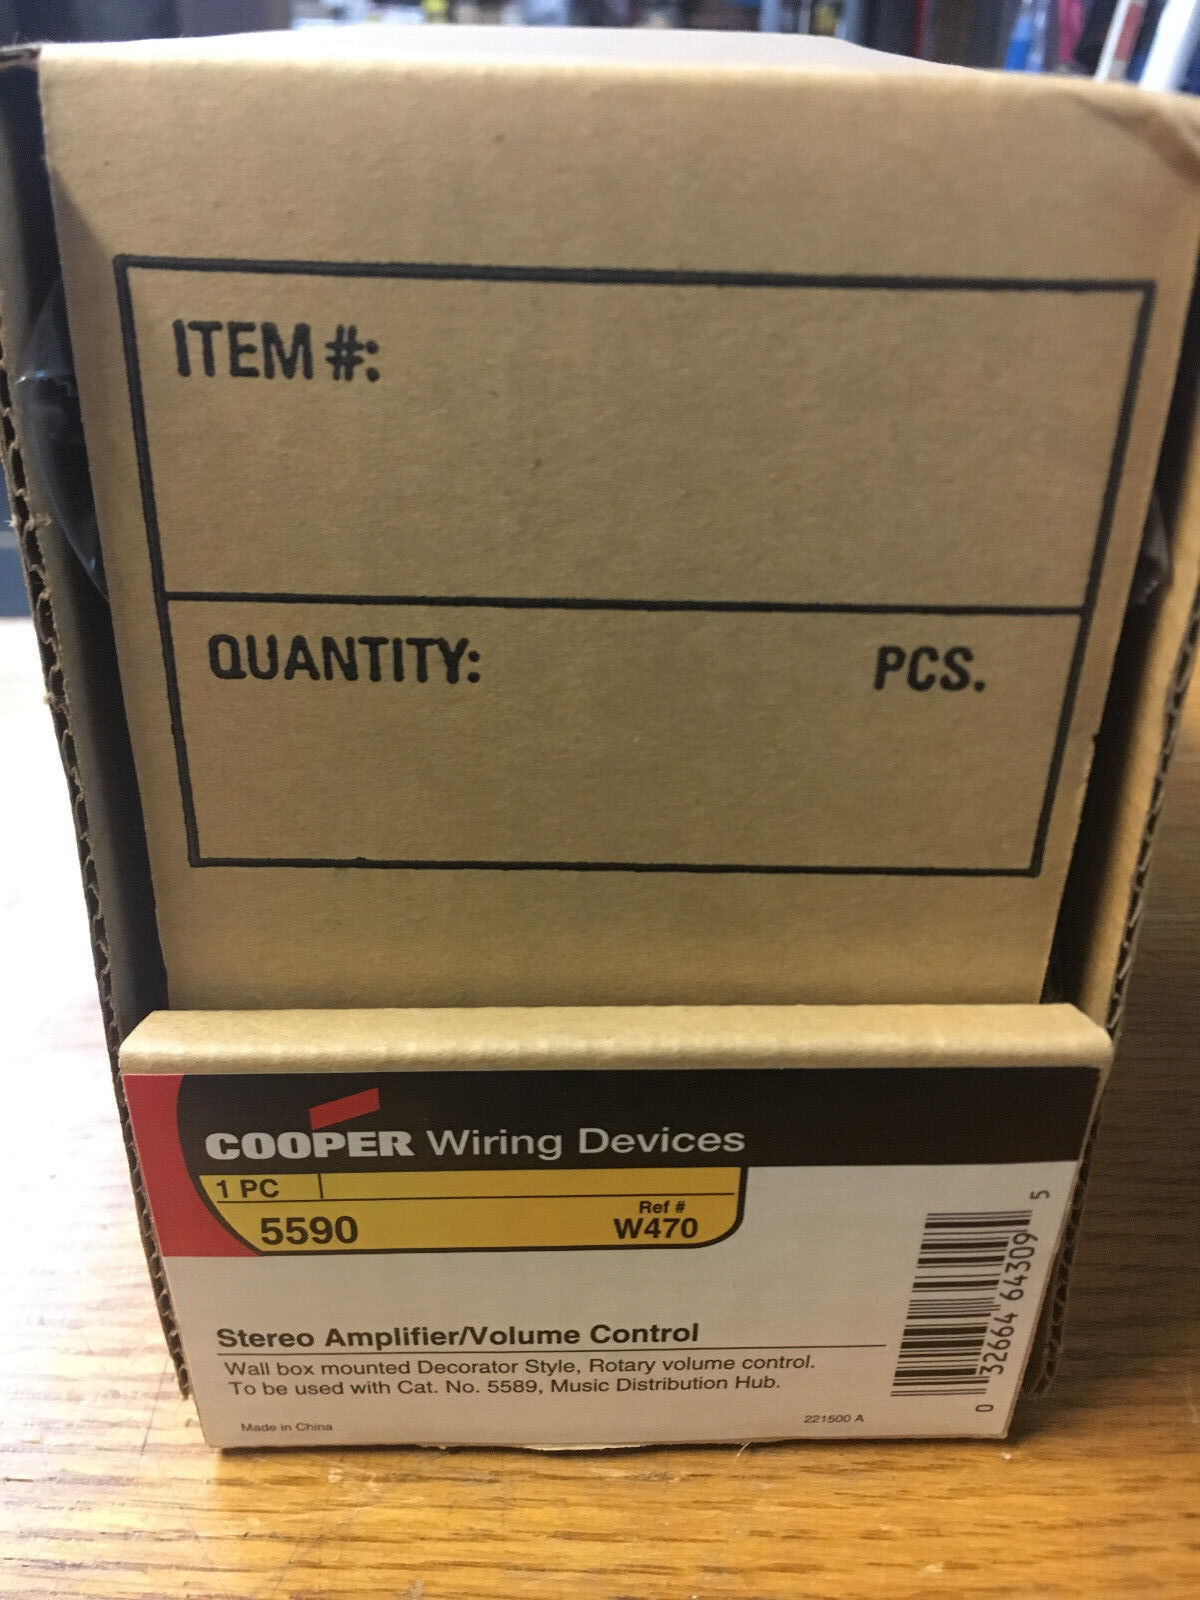 Cooper Wiring Devices 5590 Wire Data Schema 12 White Smd Led Car Boat Light Panel Circuit Board Ebay Stereo Amplifier Volume Control See Pics Rh Com